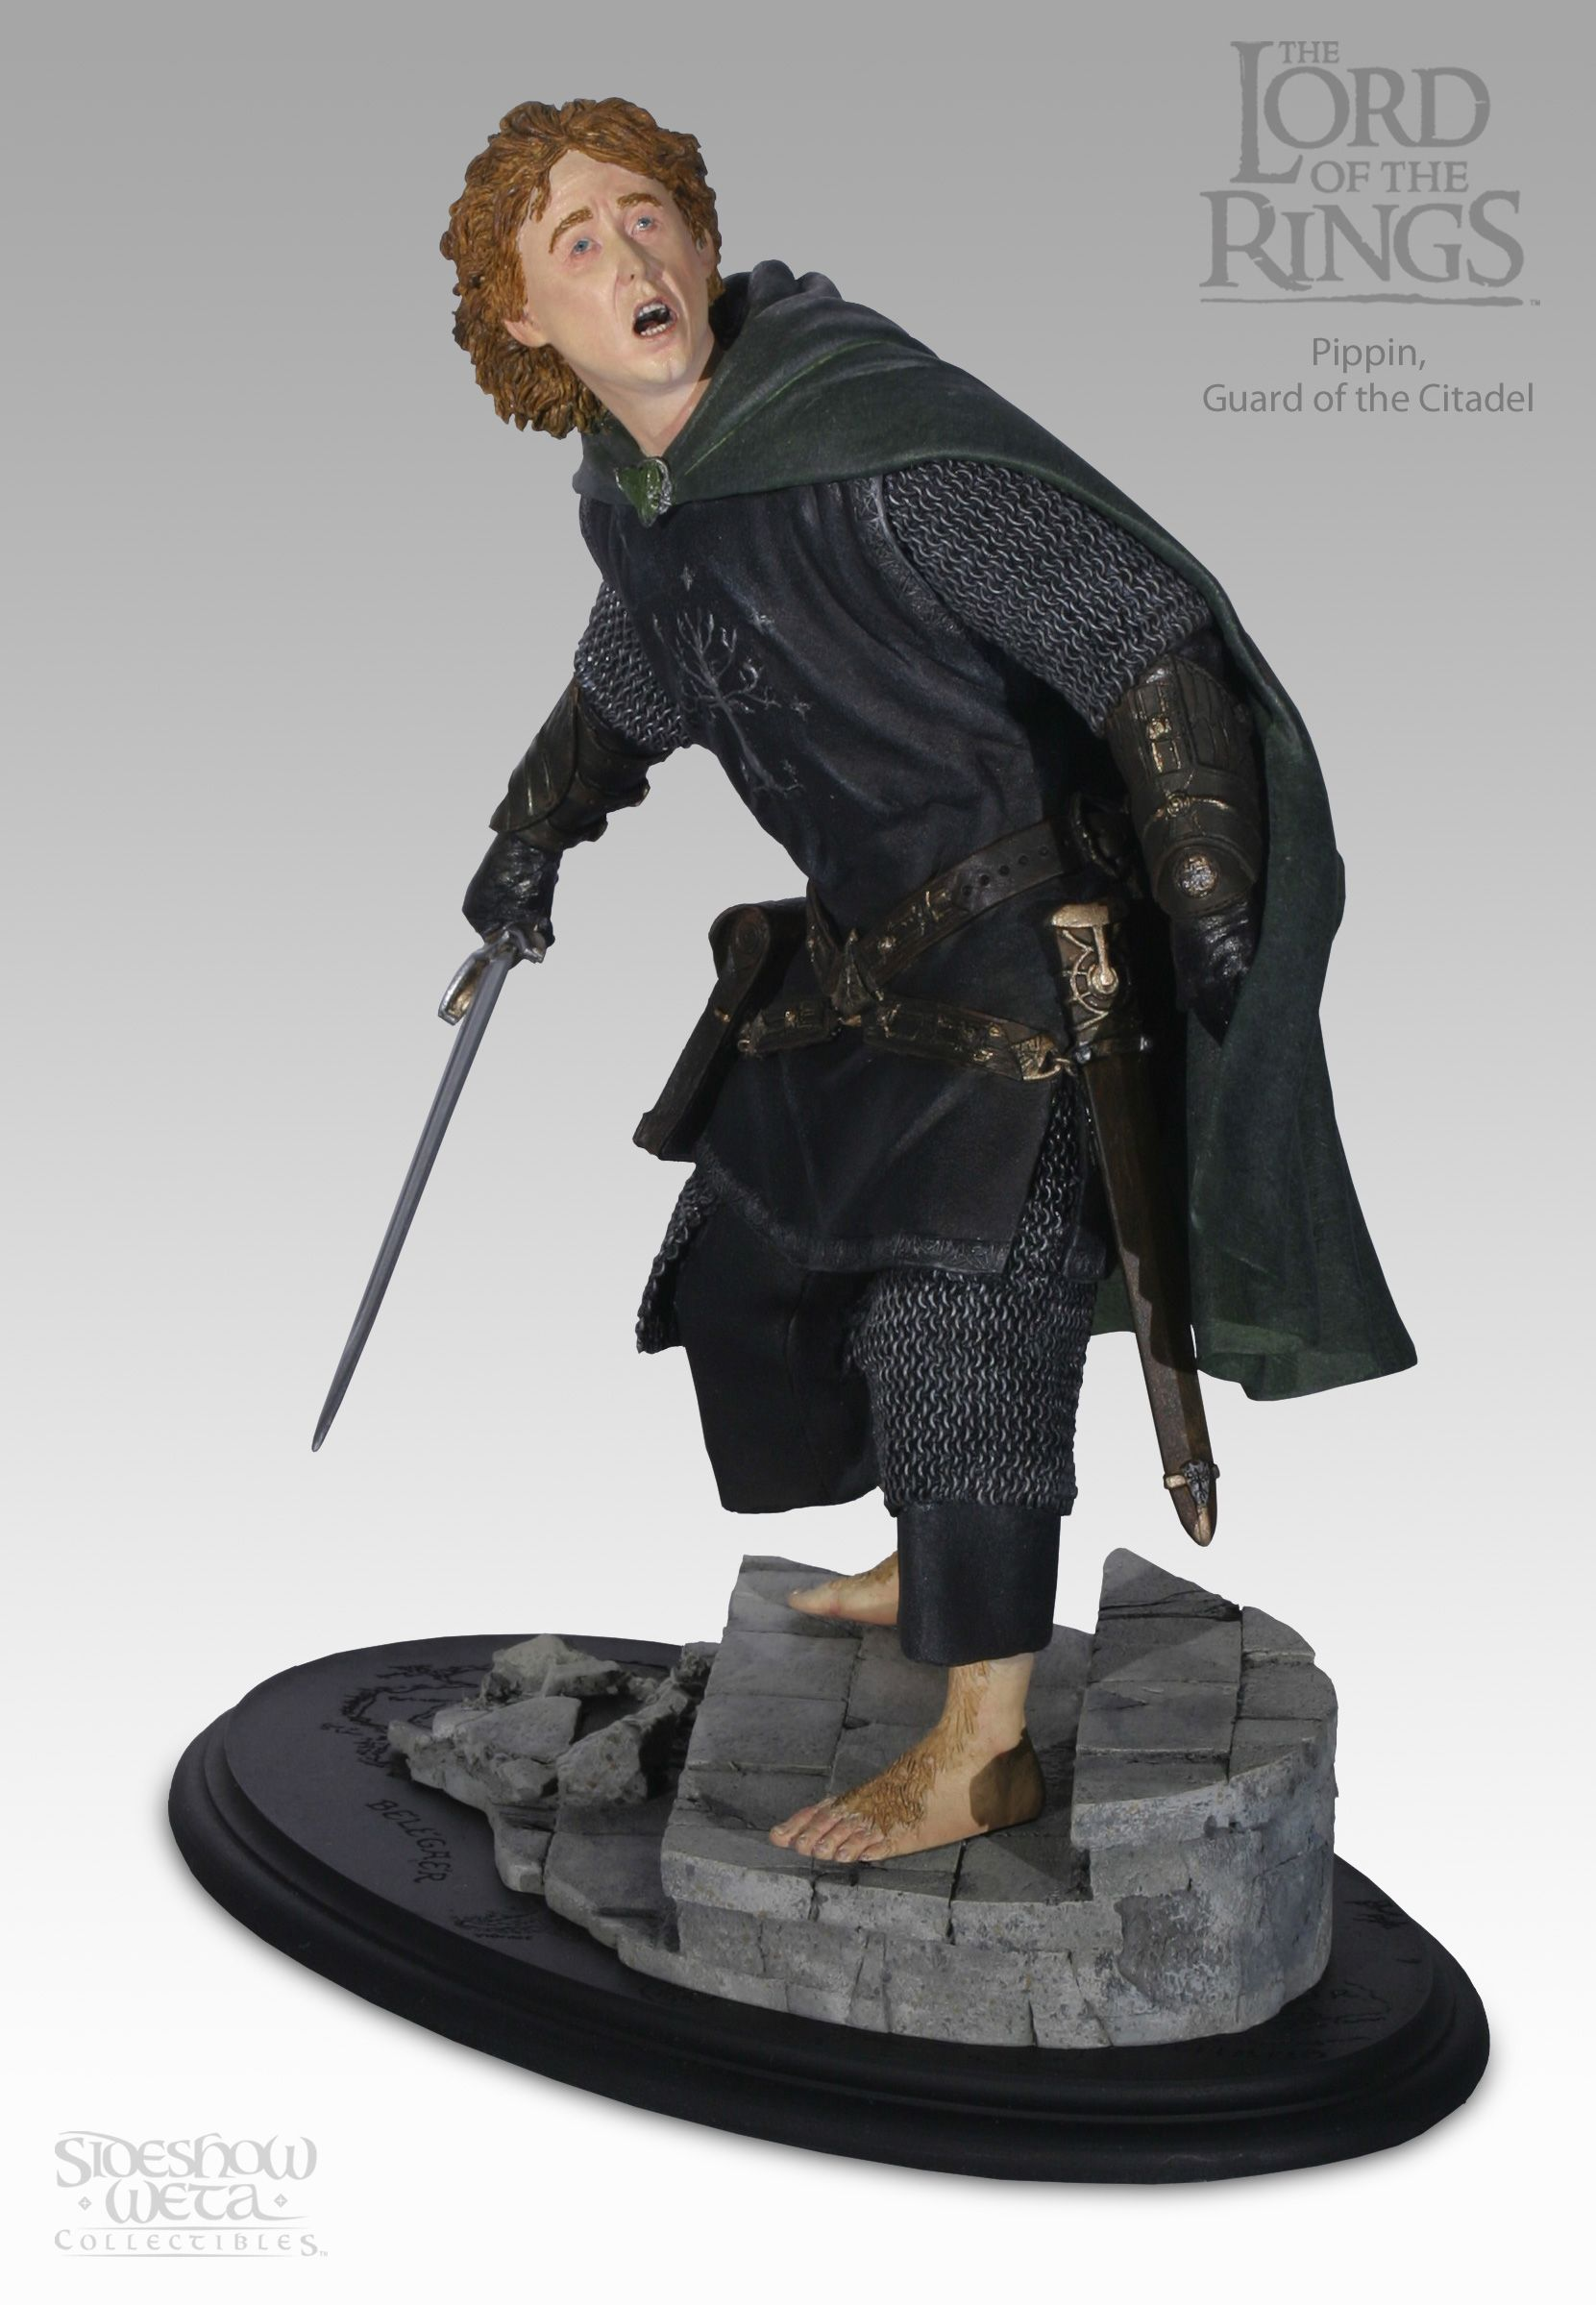 Weta Lord of the Rings Pippin Guard of the Citadel Statue